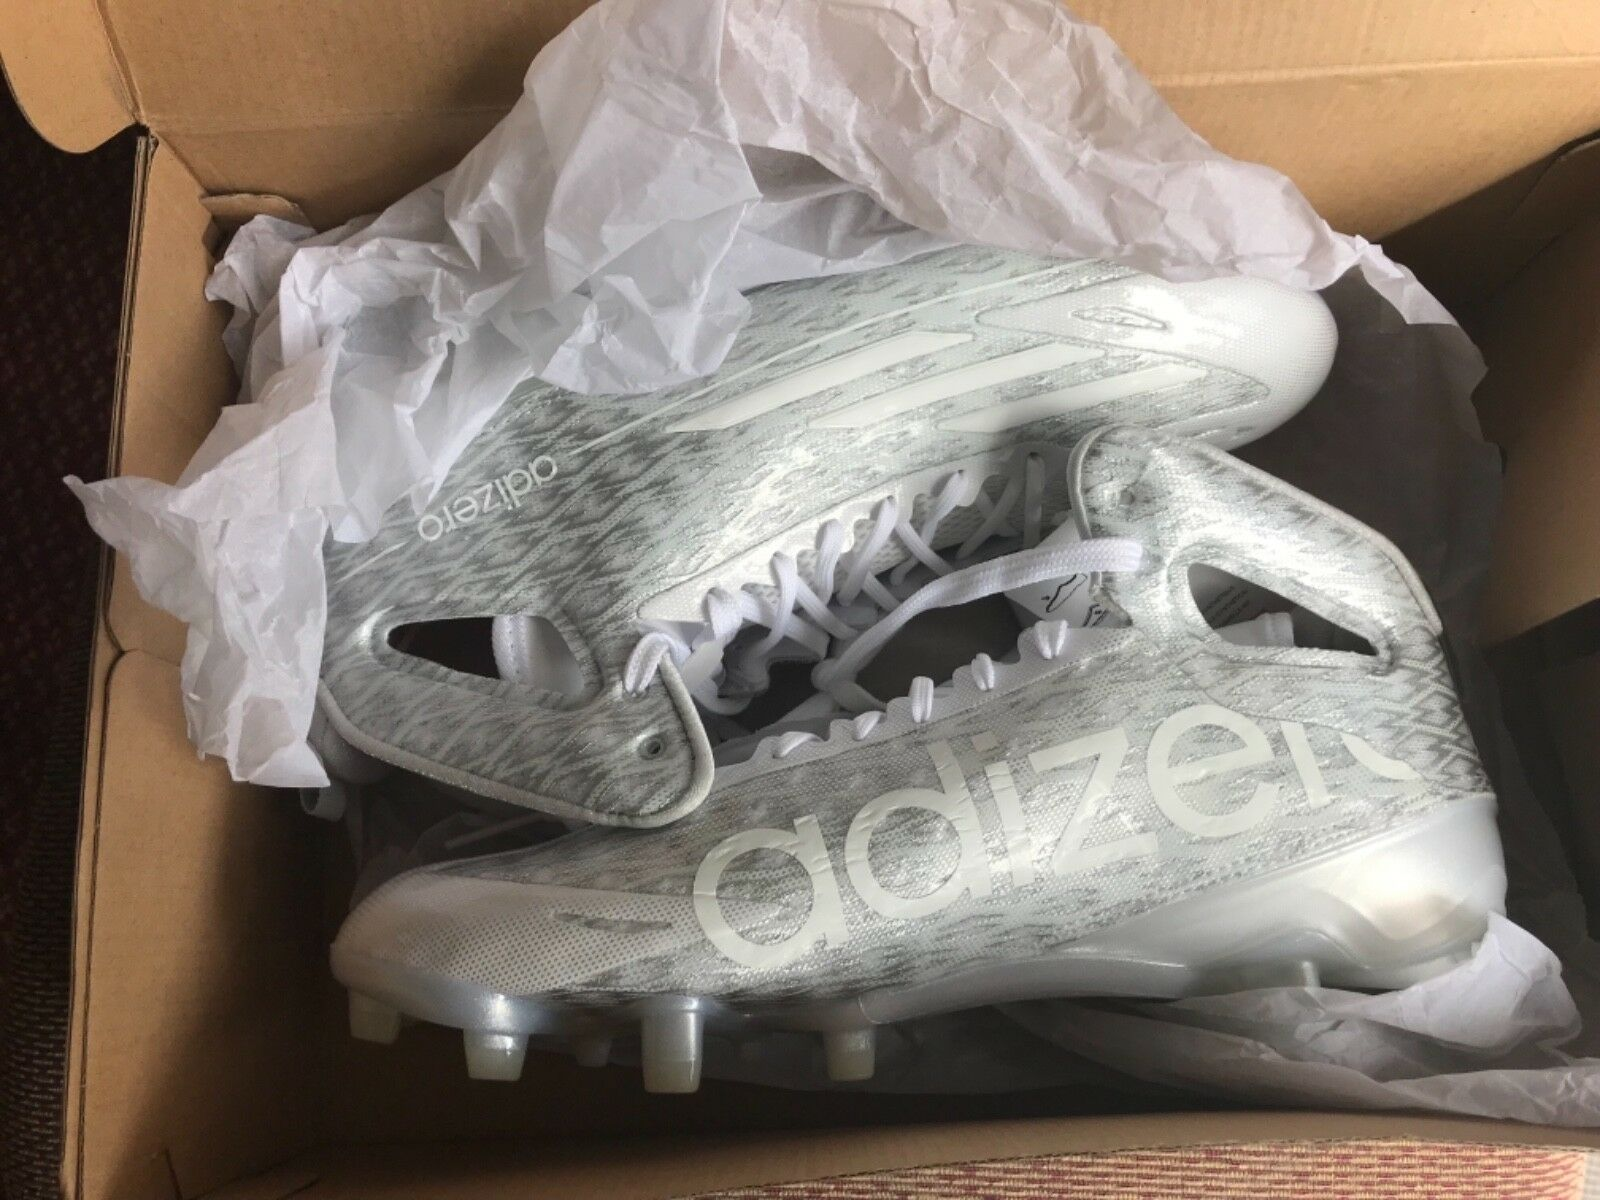 Adidas adizero 5-Star 4.0 4.0 4.0 Low Men's Football Cleats Style B54298 MSRP  125 -NEW 1a9078